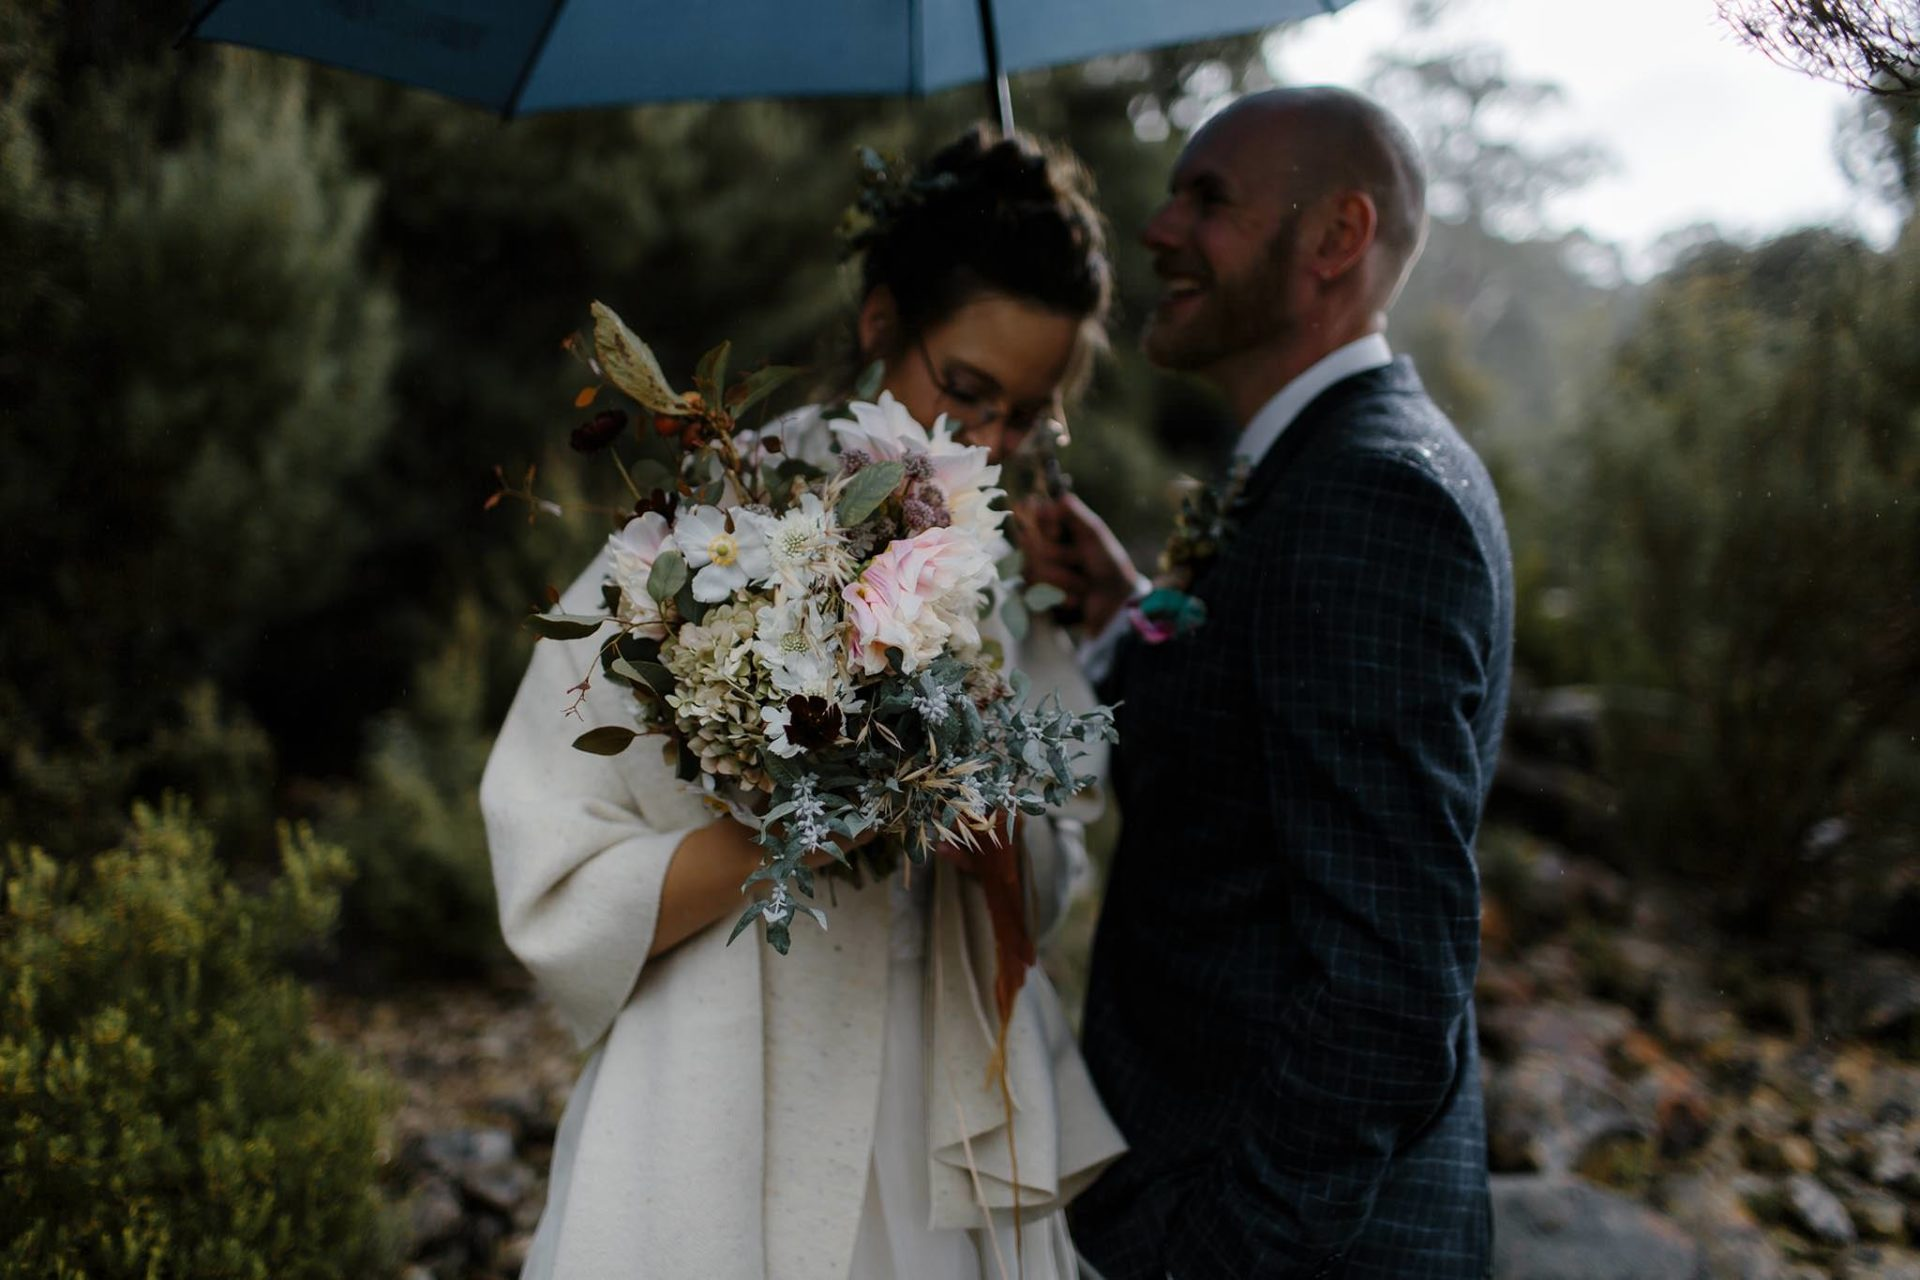 bride groom-tasmania wedding flowers-primula floral styling-elopement pump house point-eukalypt-miniature apples-headpiece